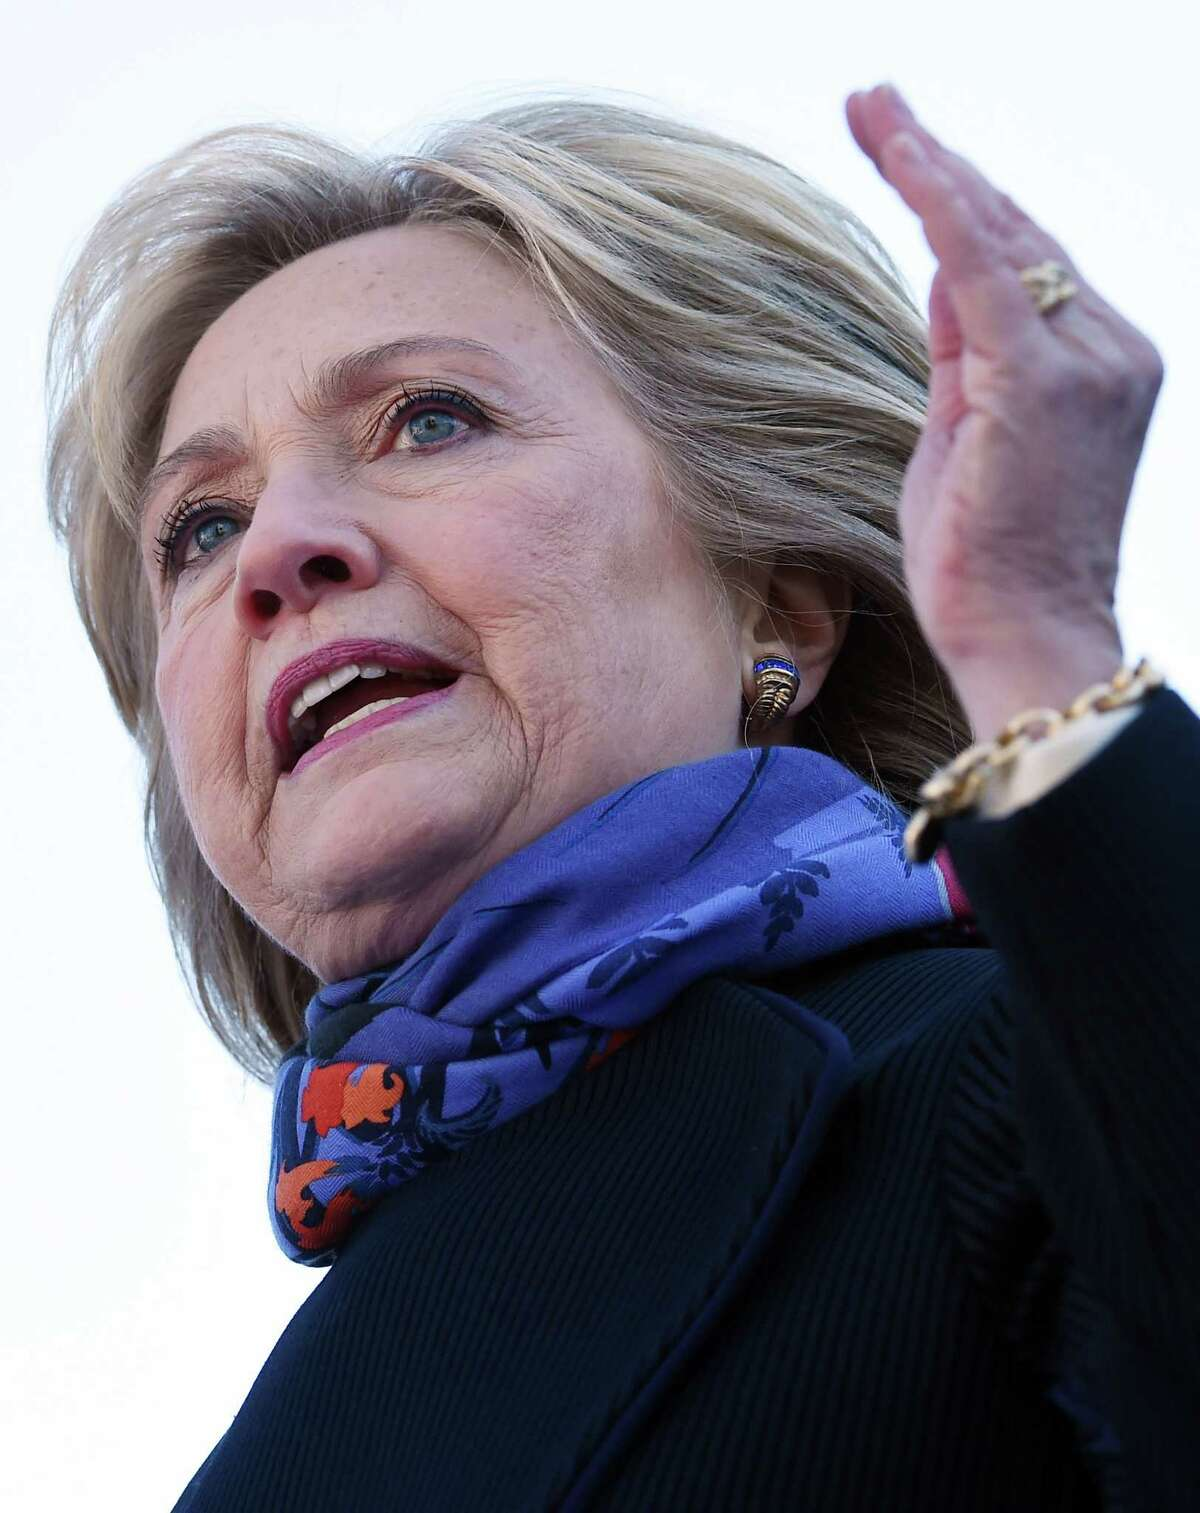 Democratic presidential candidate Hillary Clinton speaks during the King Day at the Dome event celebrating the life of Martin Luther King Jr., Monday, Jan. 18, 2016, in Columbia, S.C. (AP Photo/Rainier Ehrhardt) ORG XMIT: SCRE106